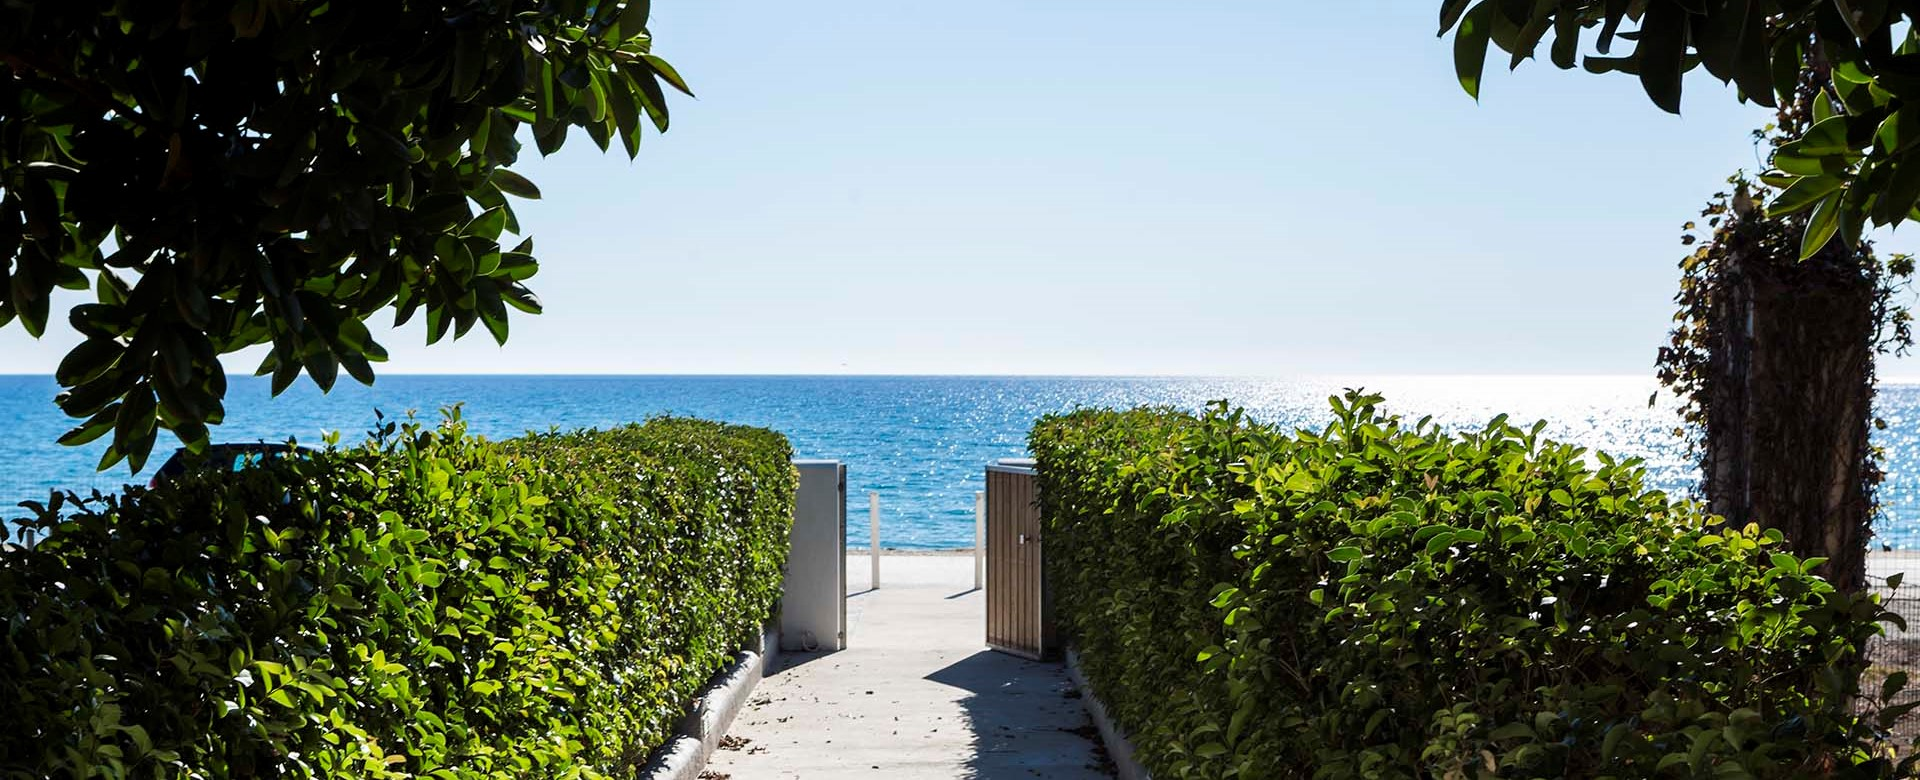 A short garden path from teh Beachfront Suites straight into the mediteranean sea at Lourdata, Kefalonia